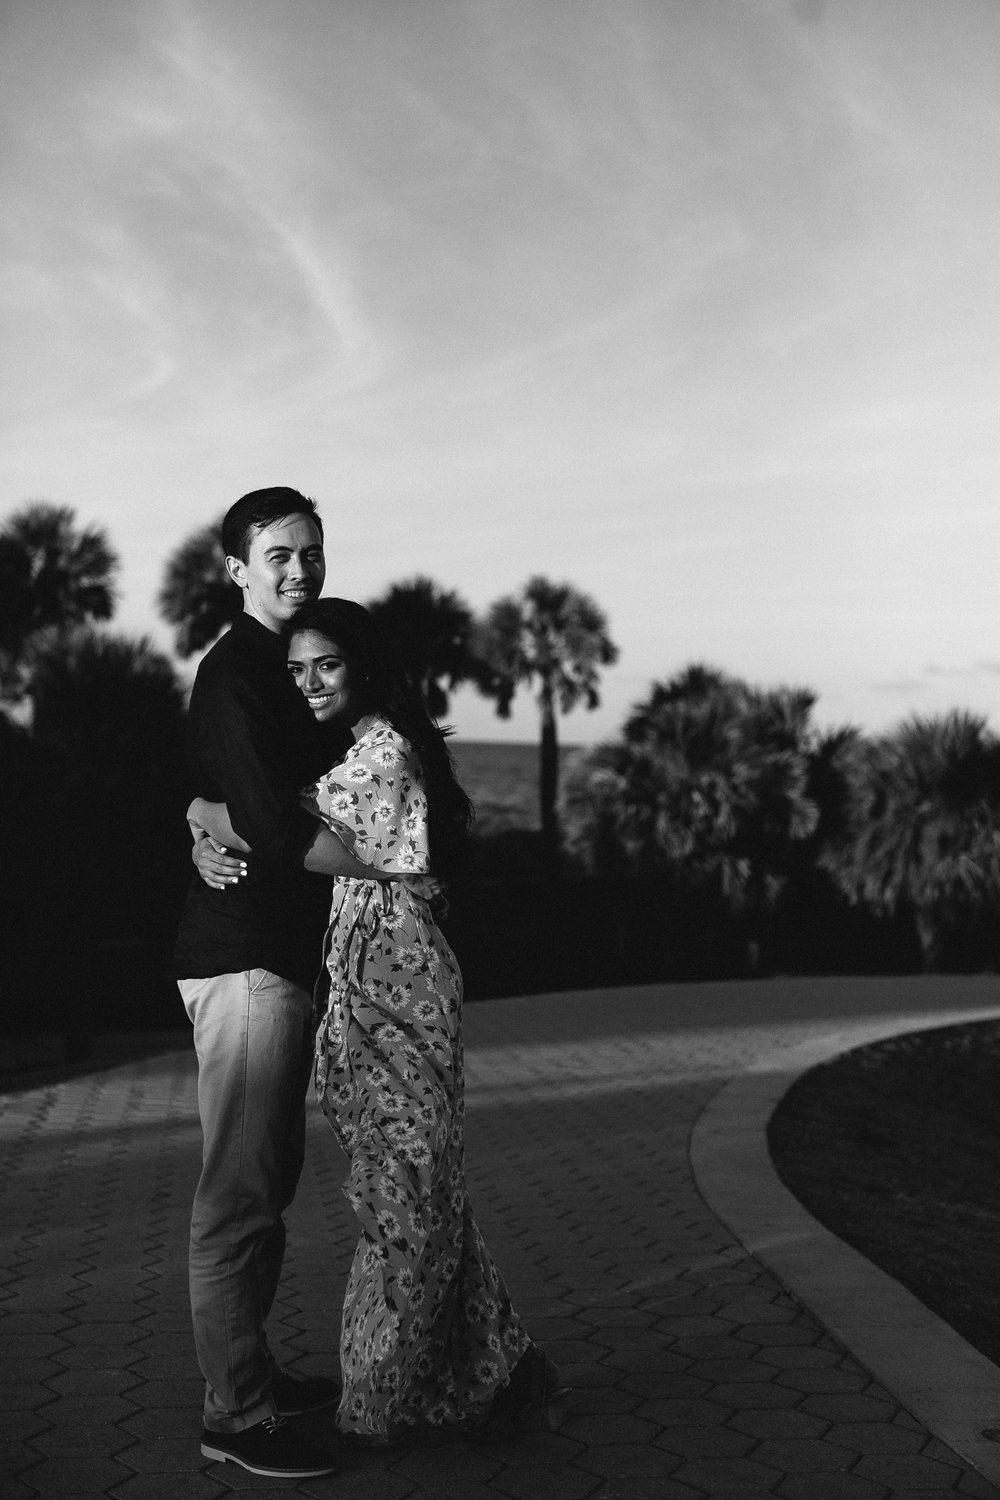 Betsy Hotel and South Pointe Park Engagement photos (34).jpg